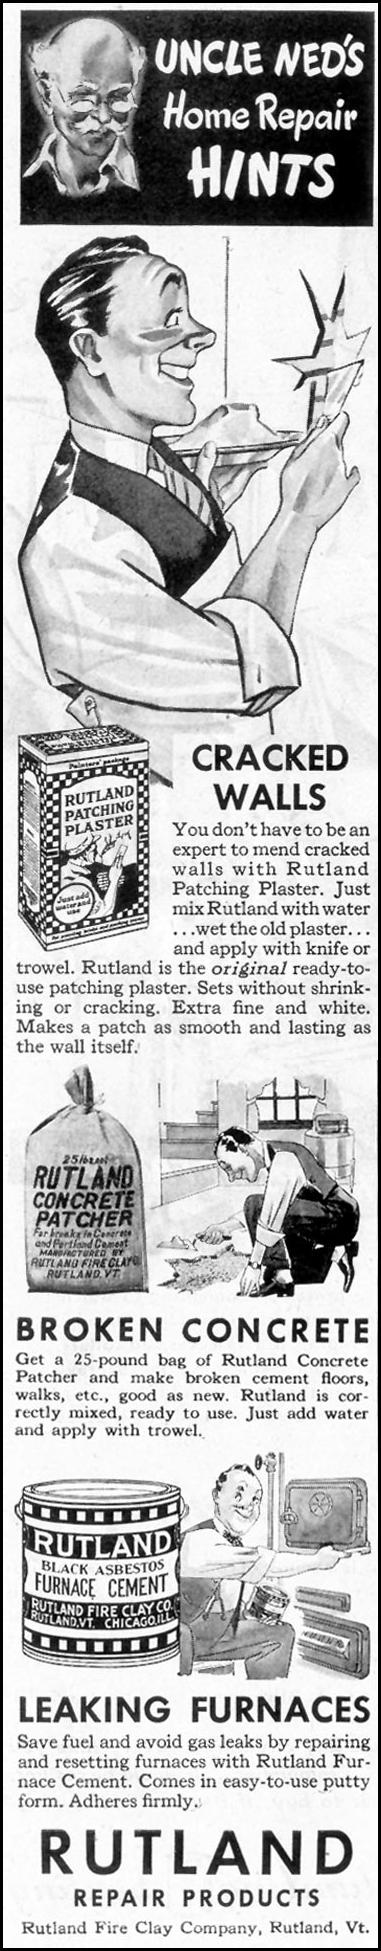 RUTLAND REPAIR PRODUCTS